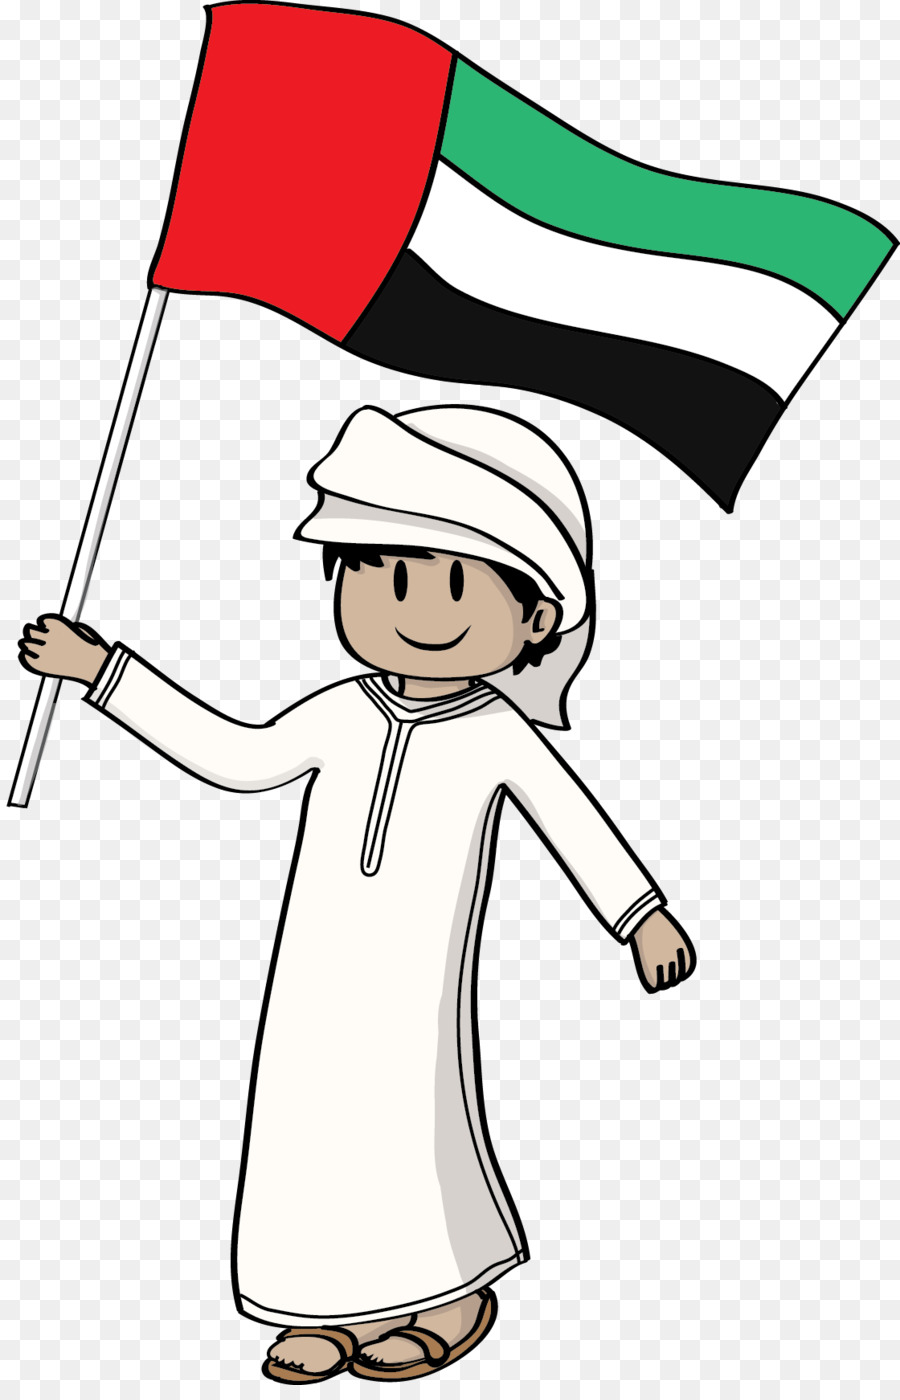 National Day clipart.